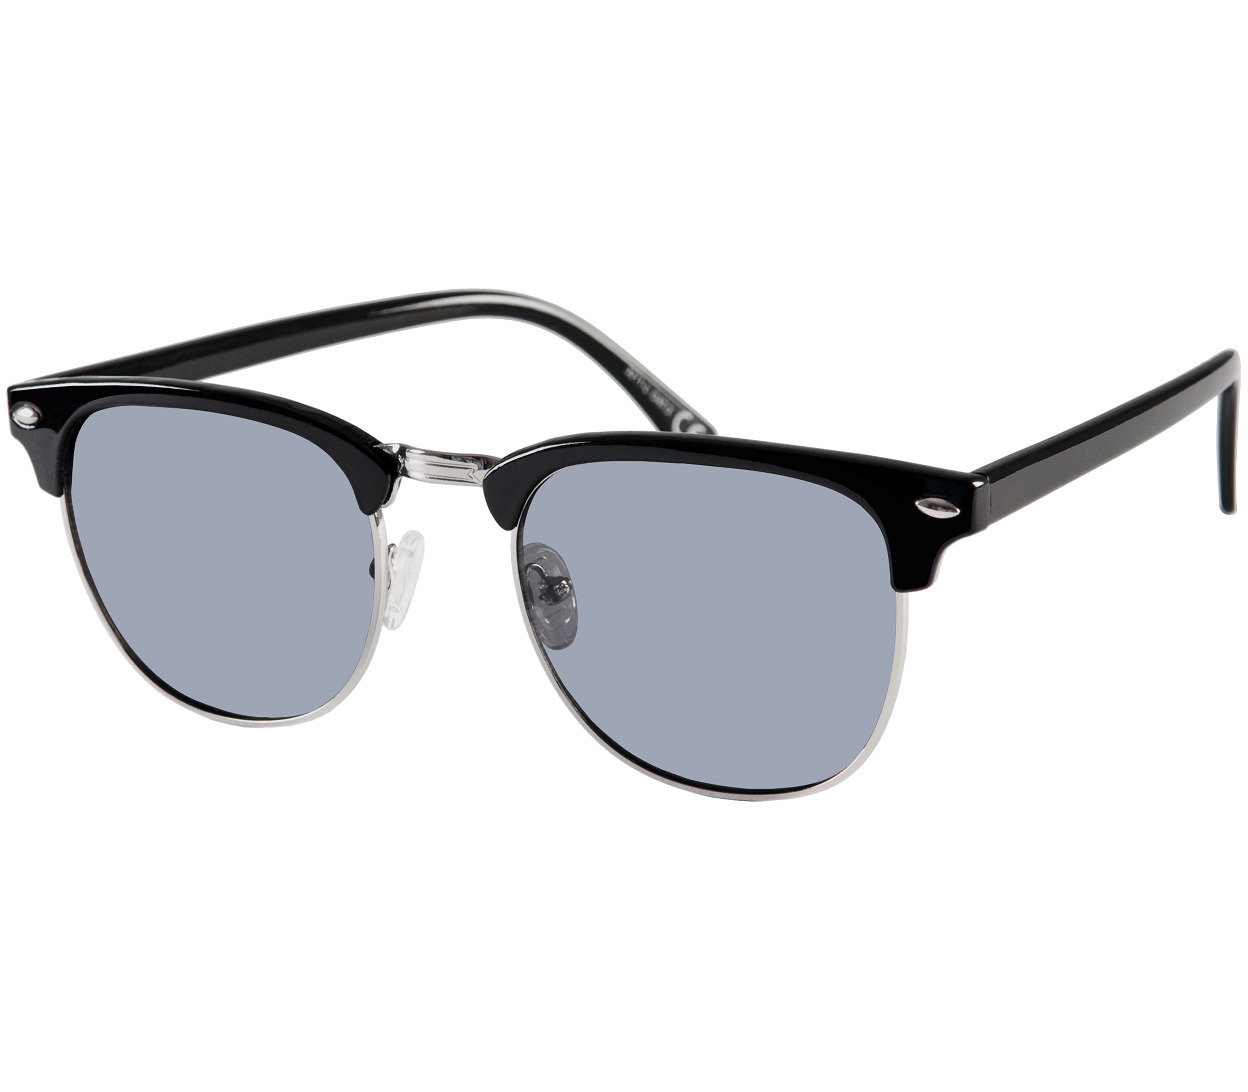 Main Image (Angle) - Turin (Black) Retro Sunglasses